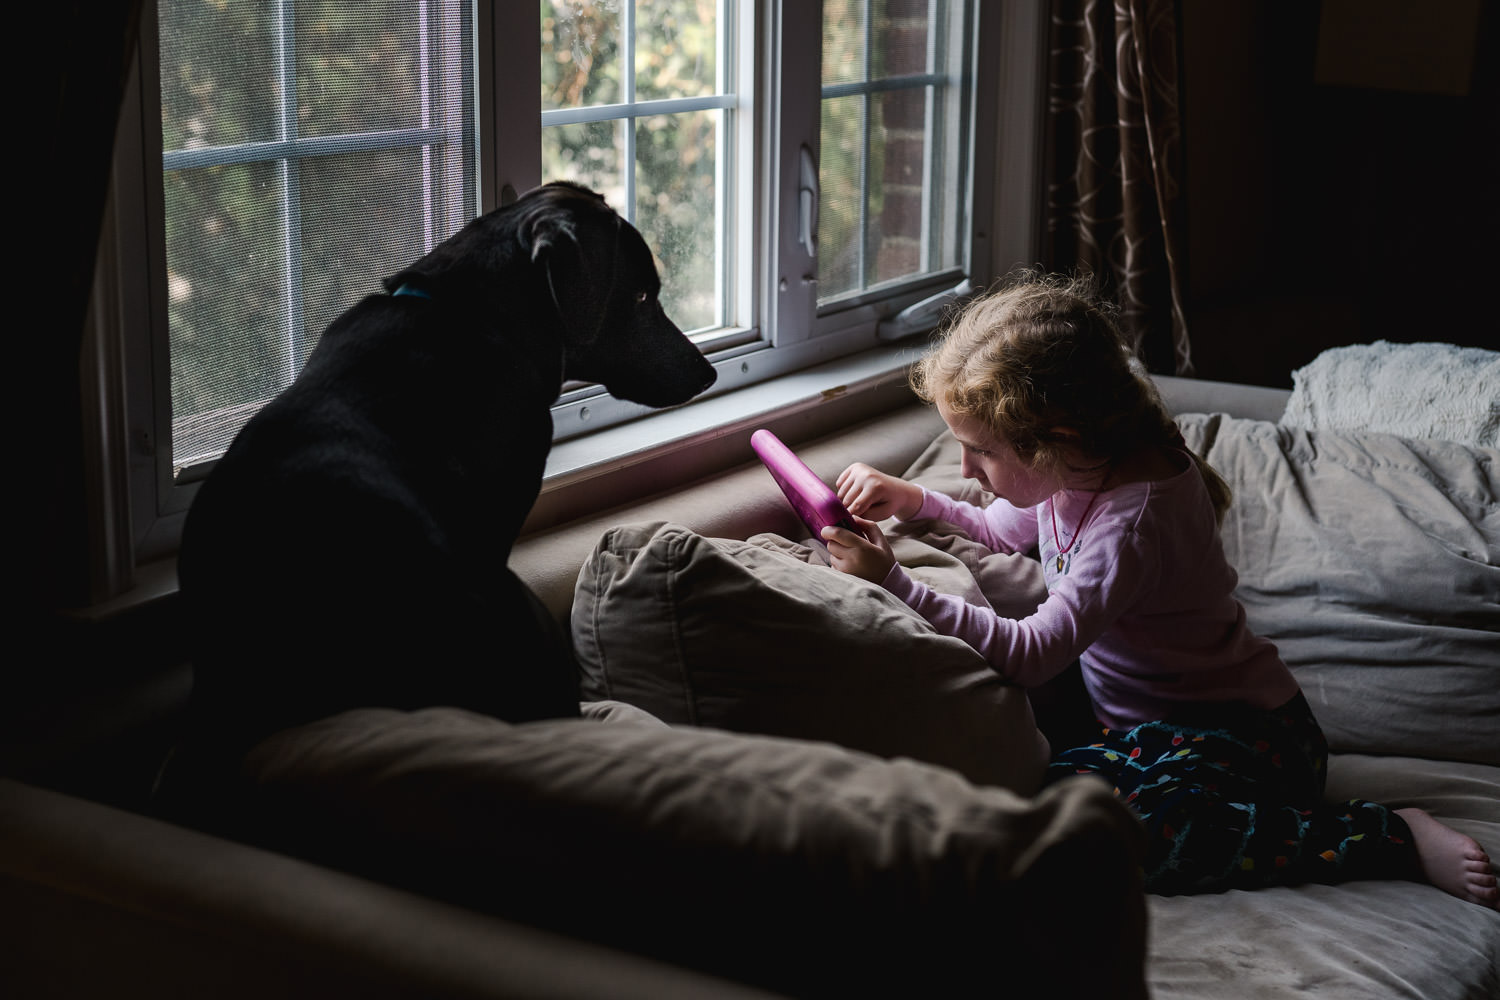 A little girl plays with her tablet on the couch next to her dog.